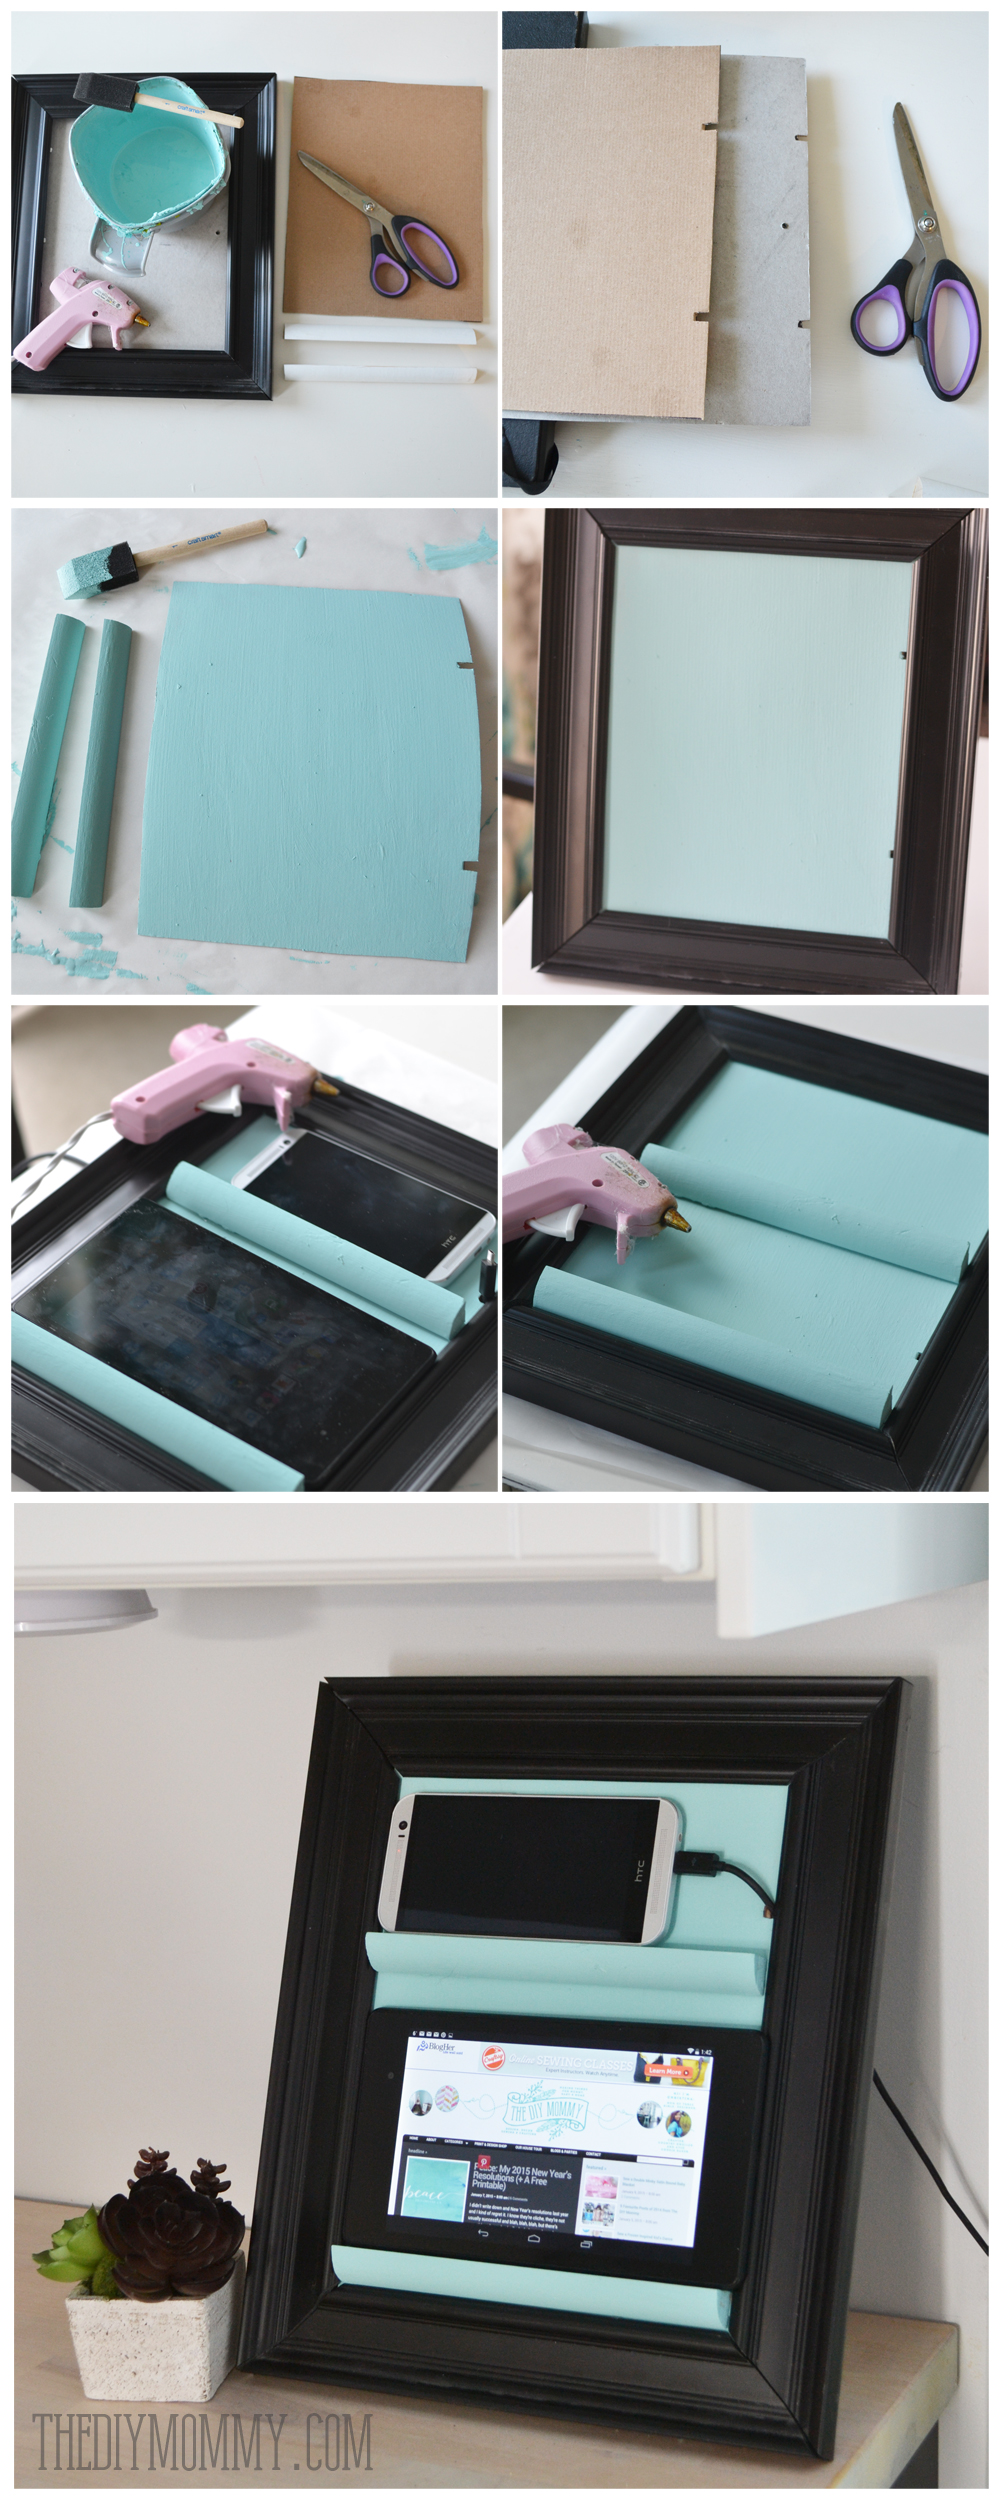 How to make a counter top tablet and phone holder and charging station out of a picture frame and some trim